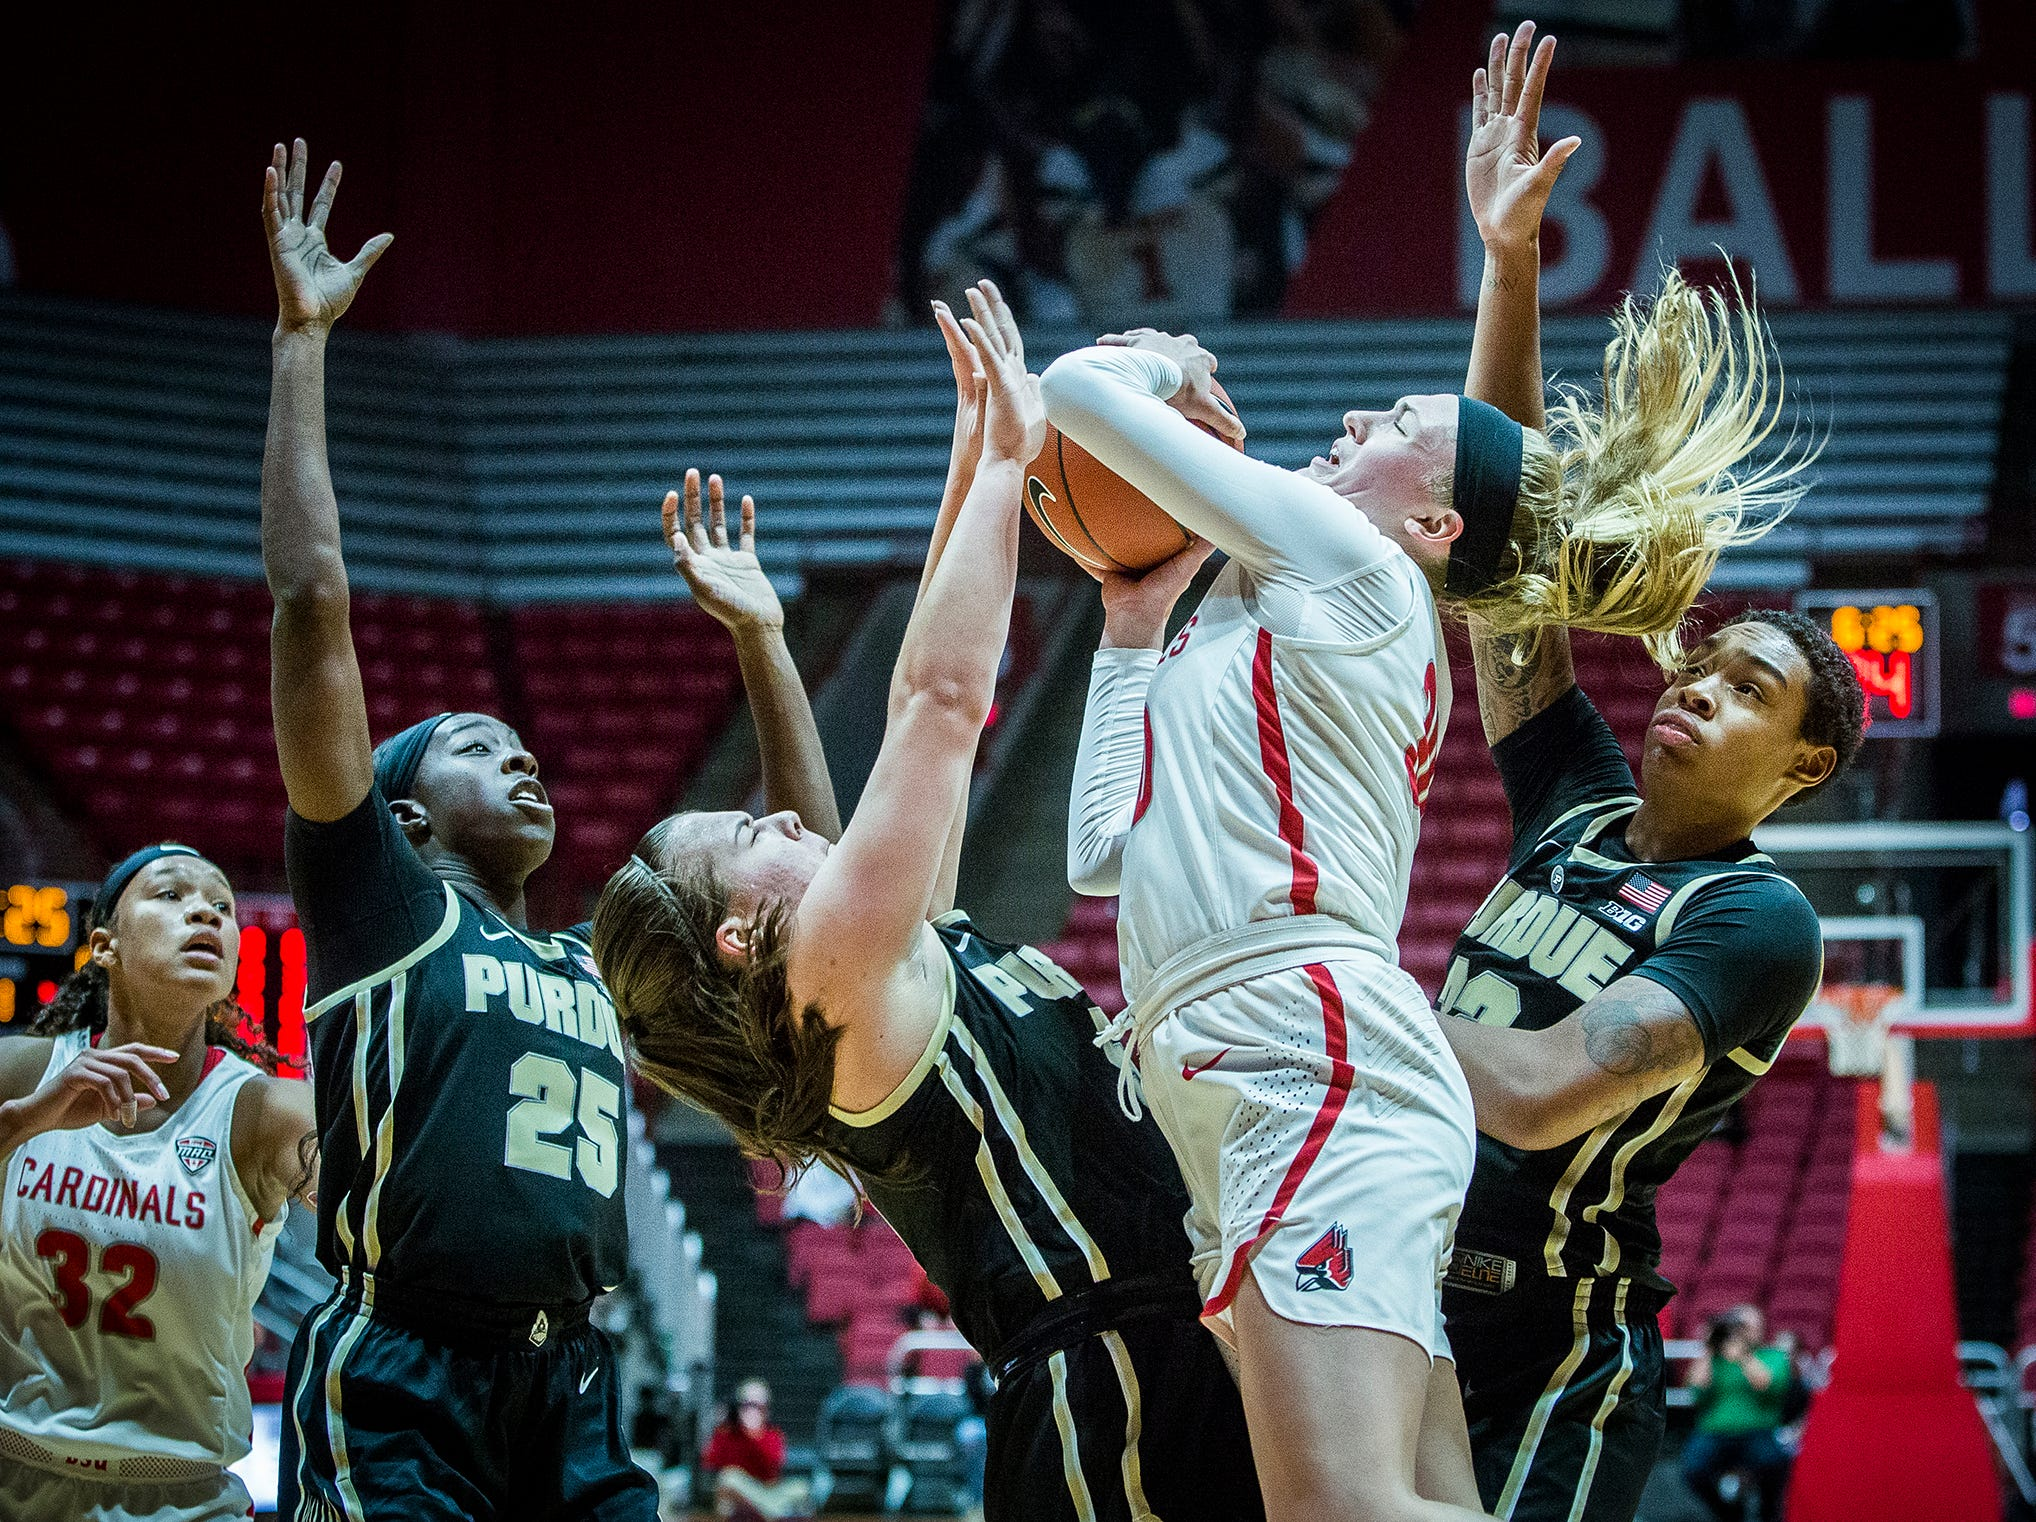 Ball State's Anna Clephane struggles against Purdue's defense during their game at Worthen Arena Wednesday, Nov. 7, 2018.